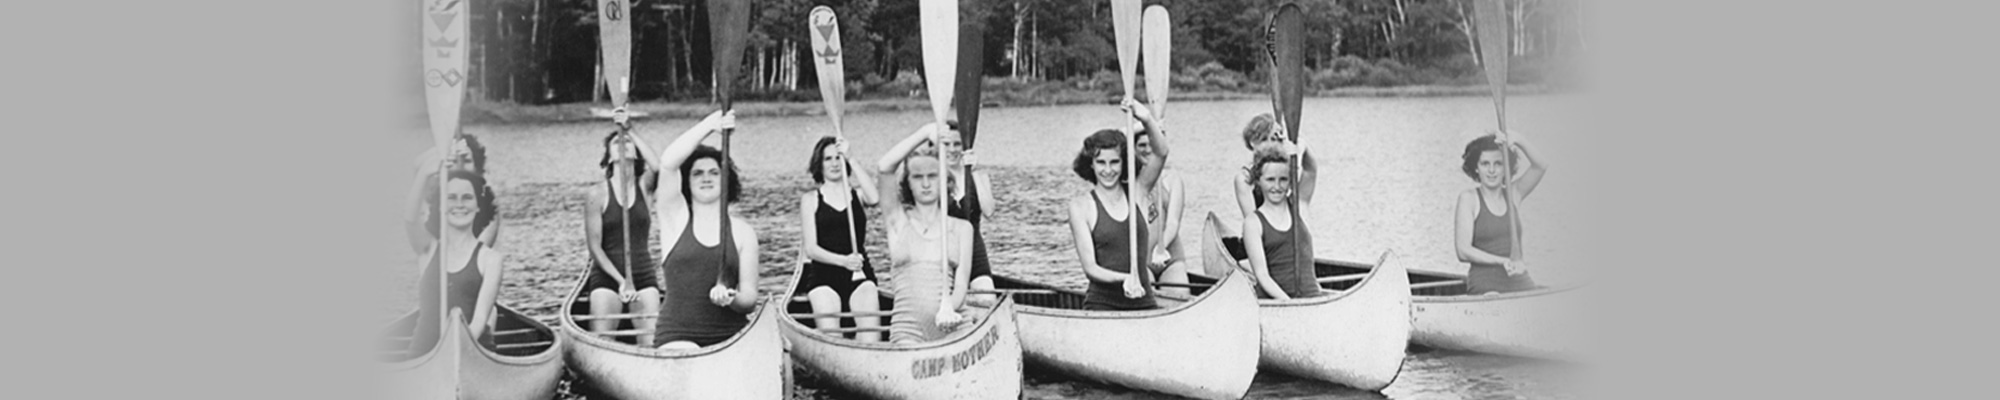 Canoe at Camp Jeanne d'Arc All Girls Summer Camp Alumni